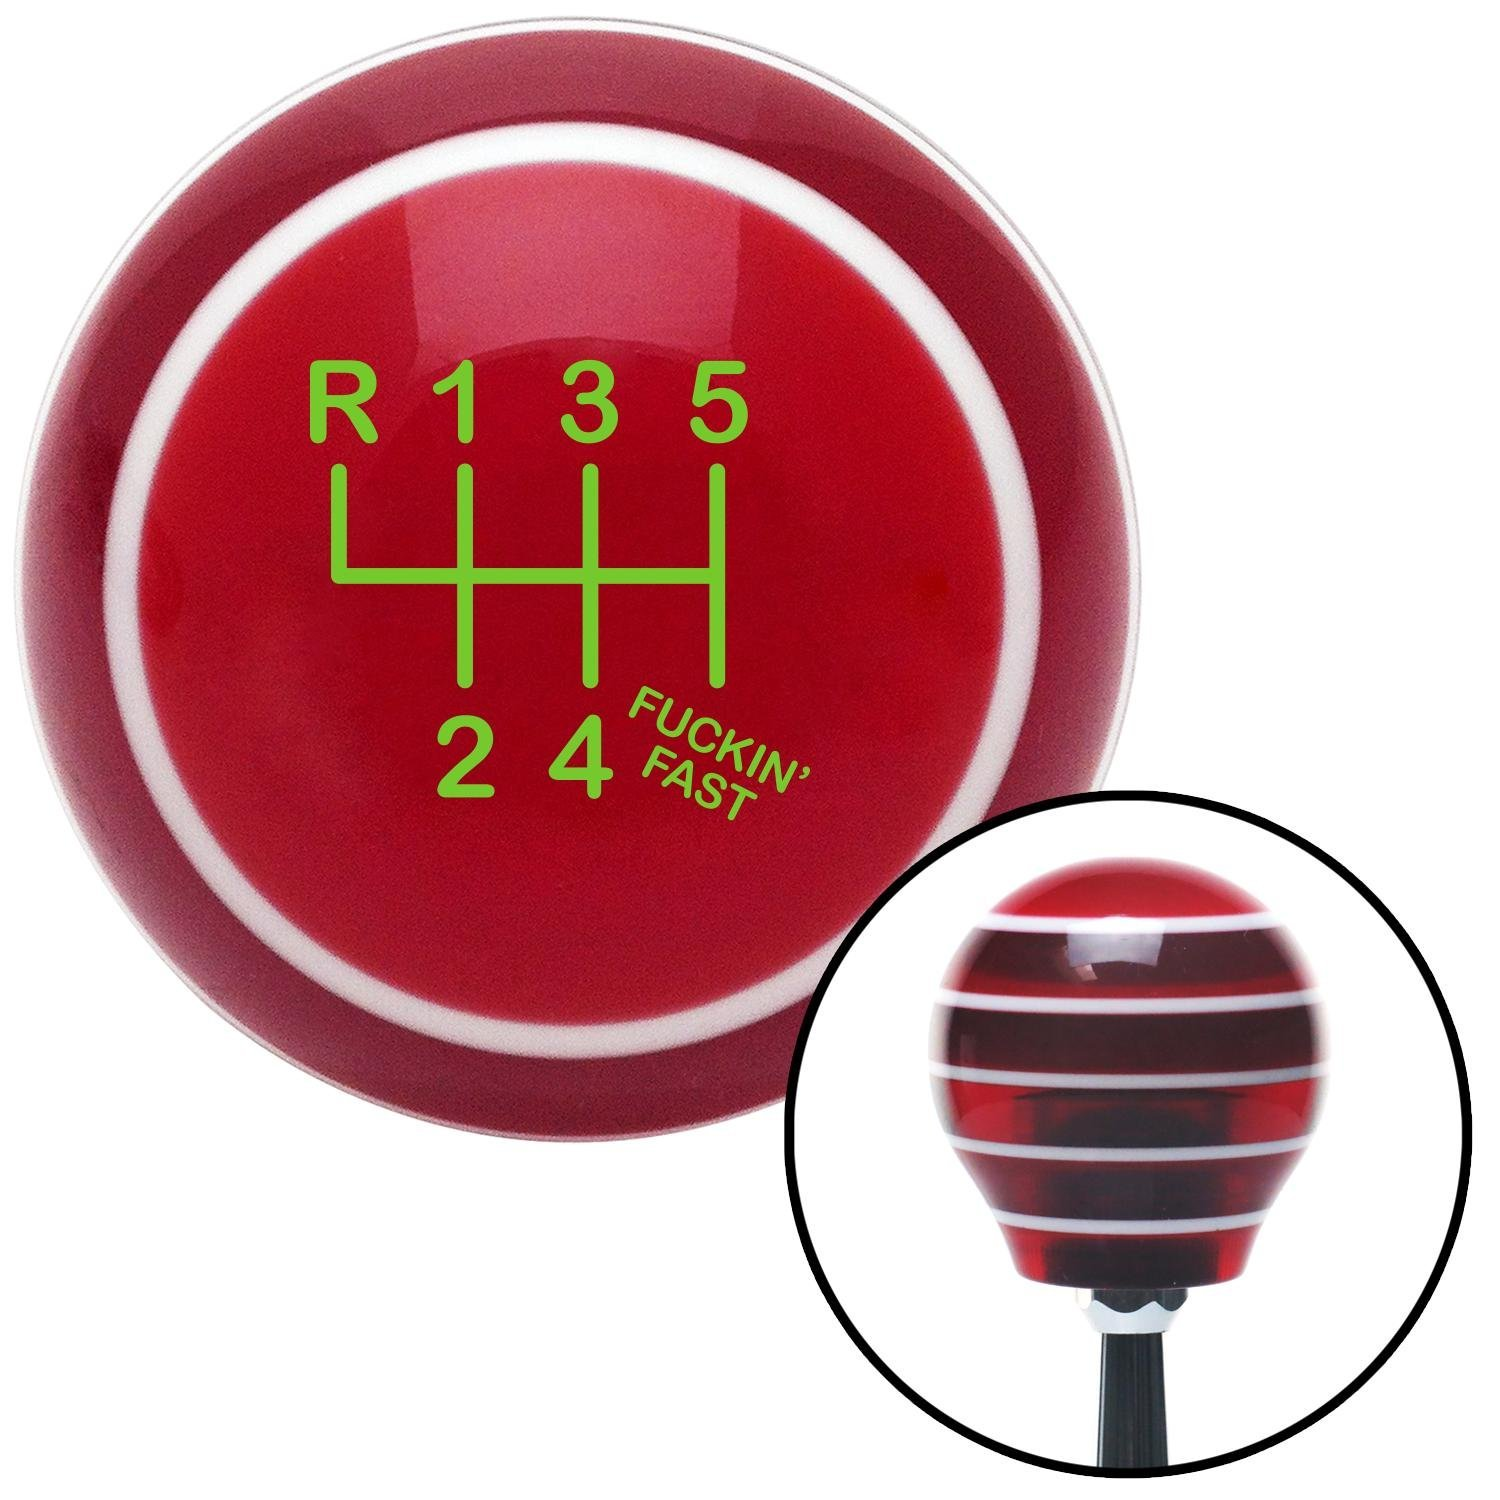 Green Shift Pattern Fcking Fast Style 20n American Shifter 118131 Red Stripe Shift Knob with M16 x 1.5 Insert